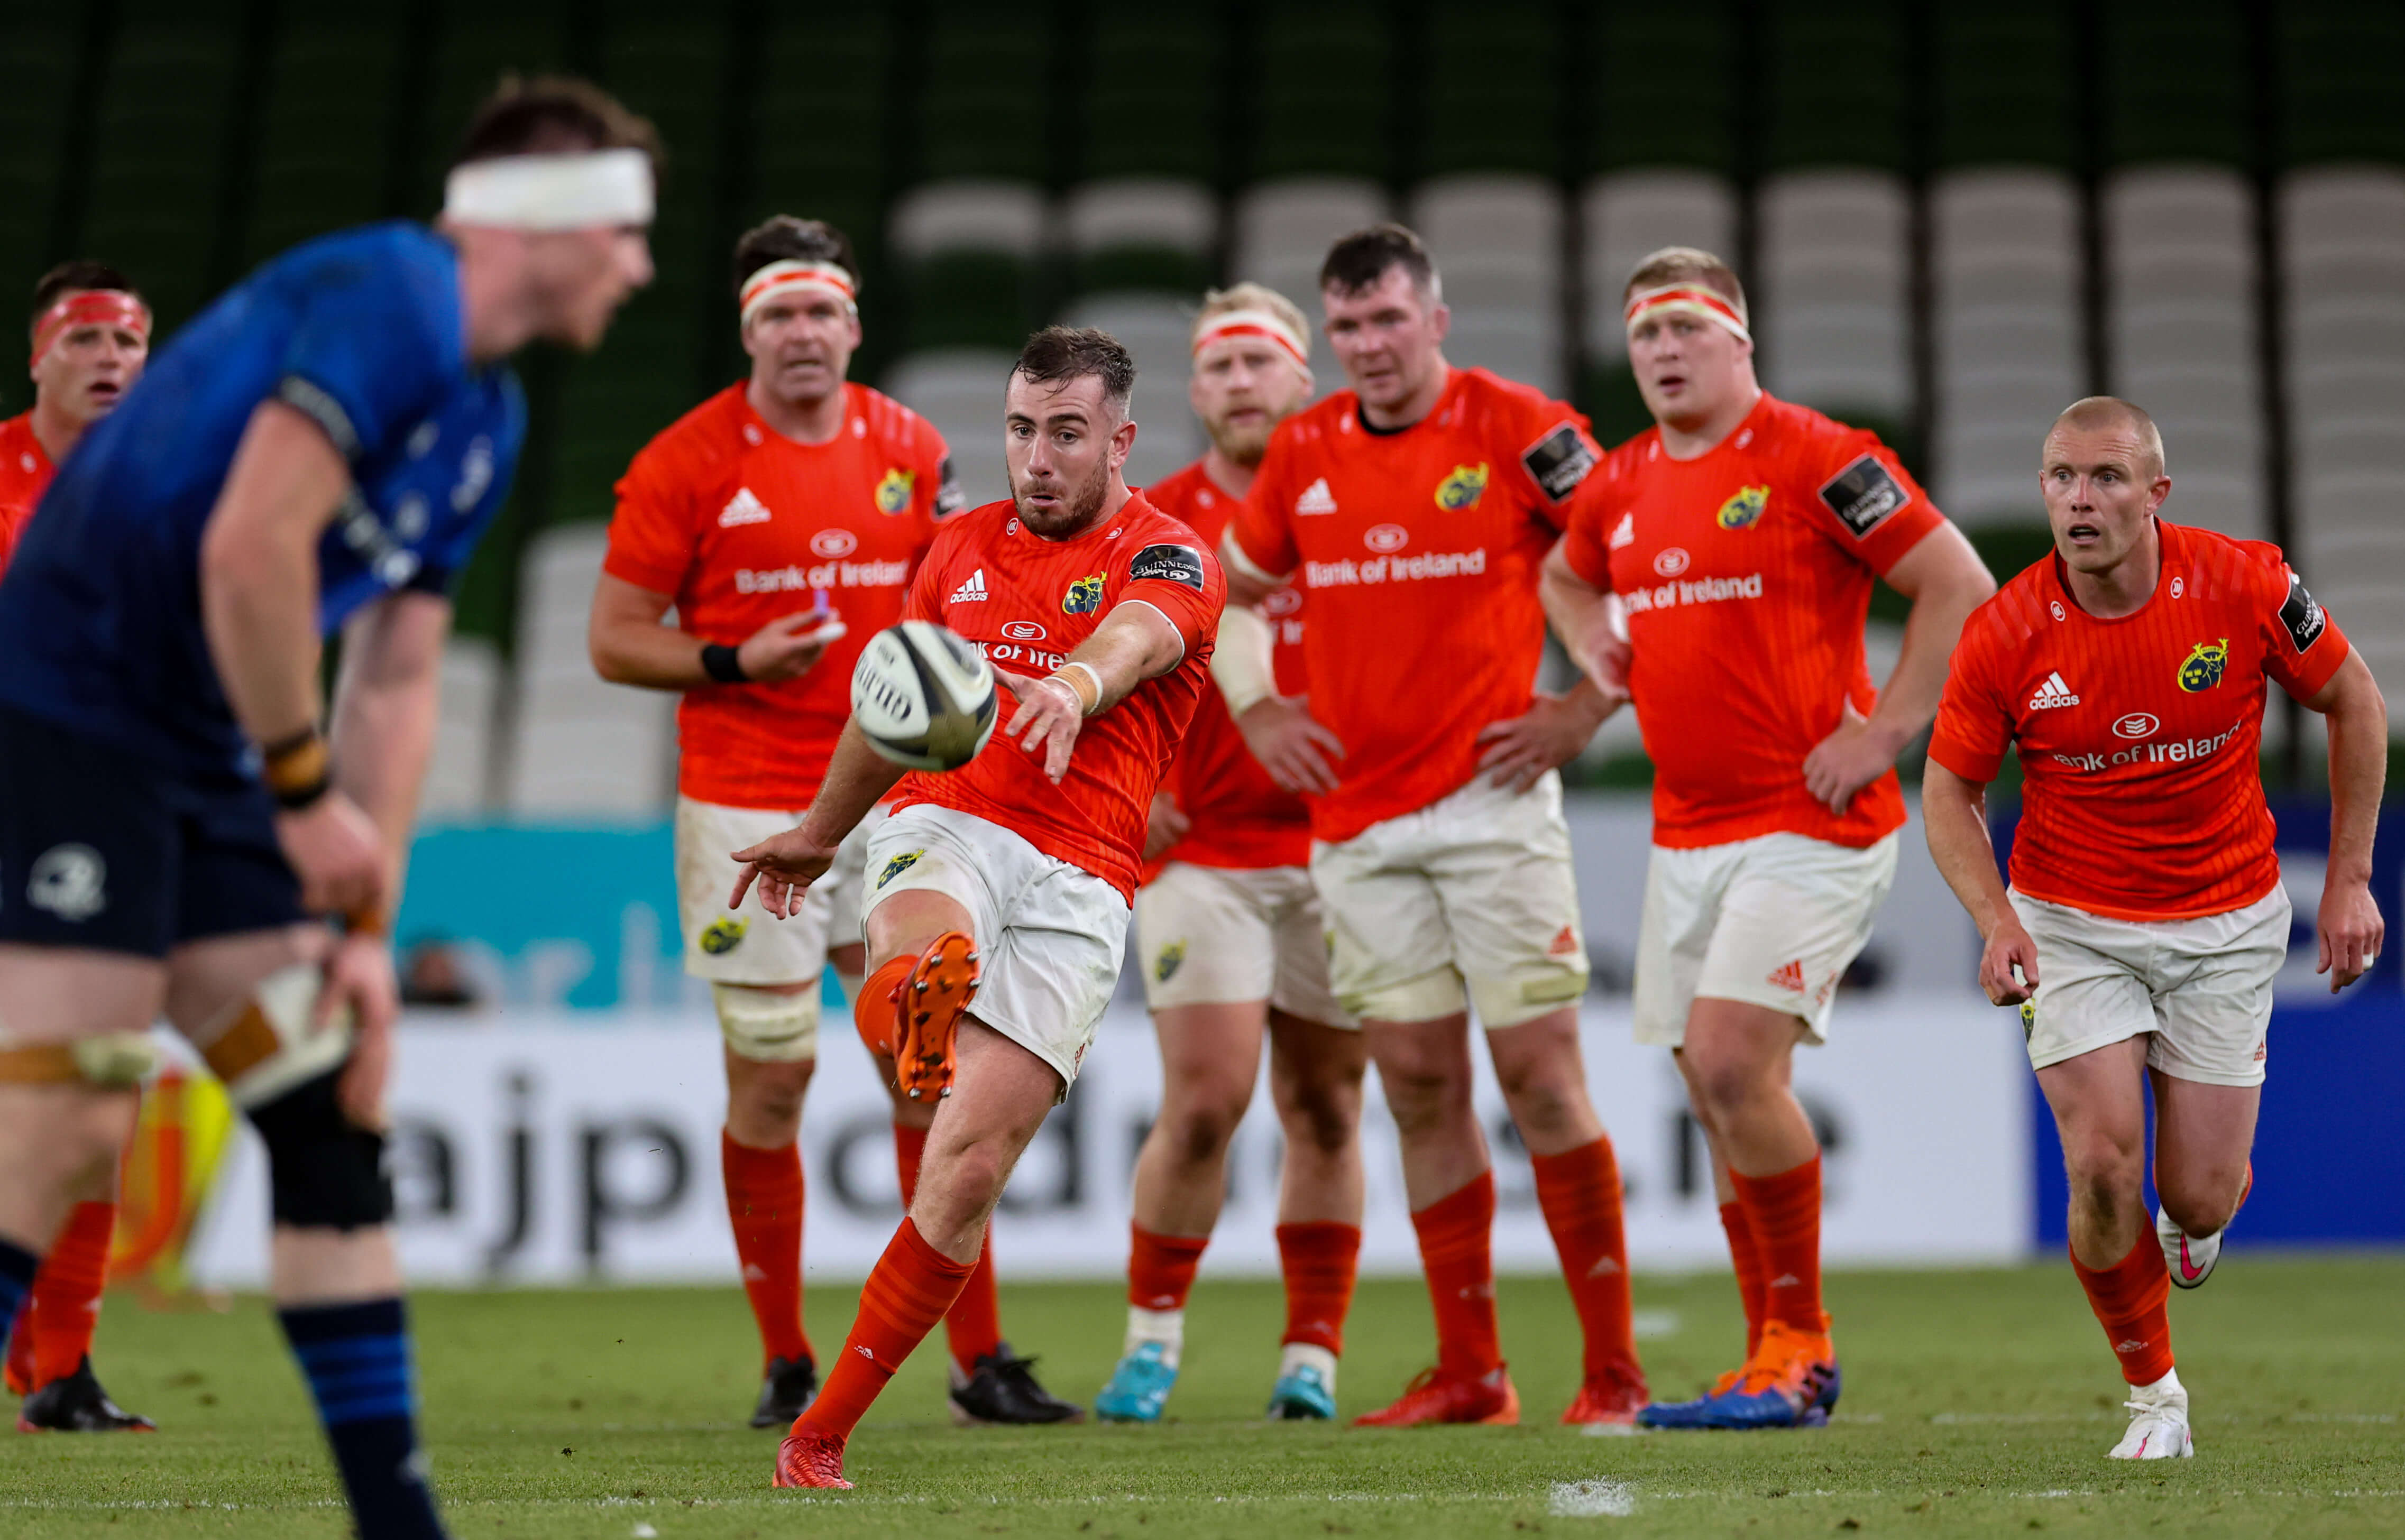 Munster Rugby in Action, 2021